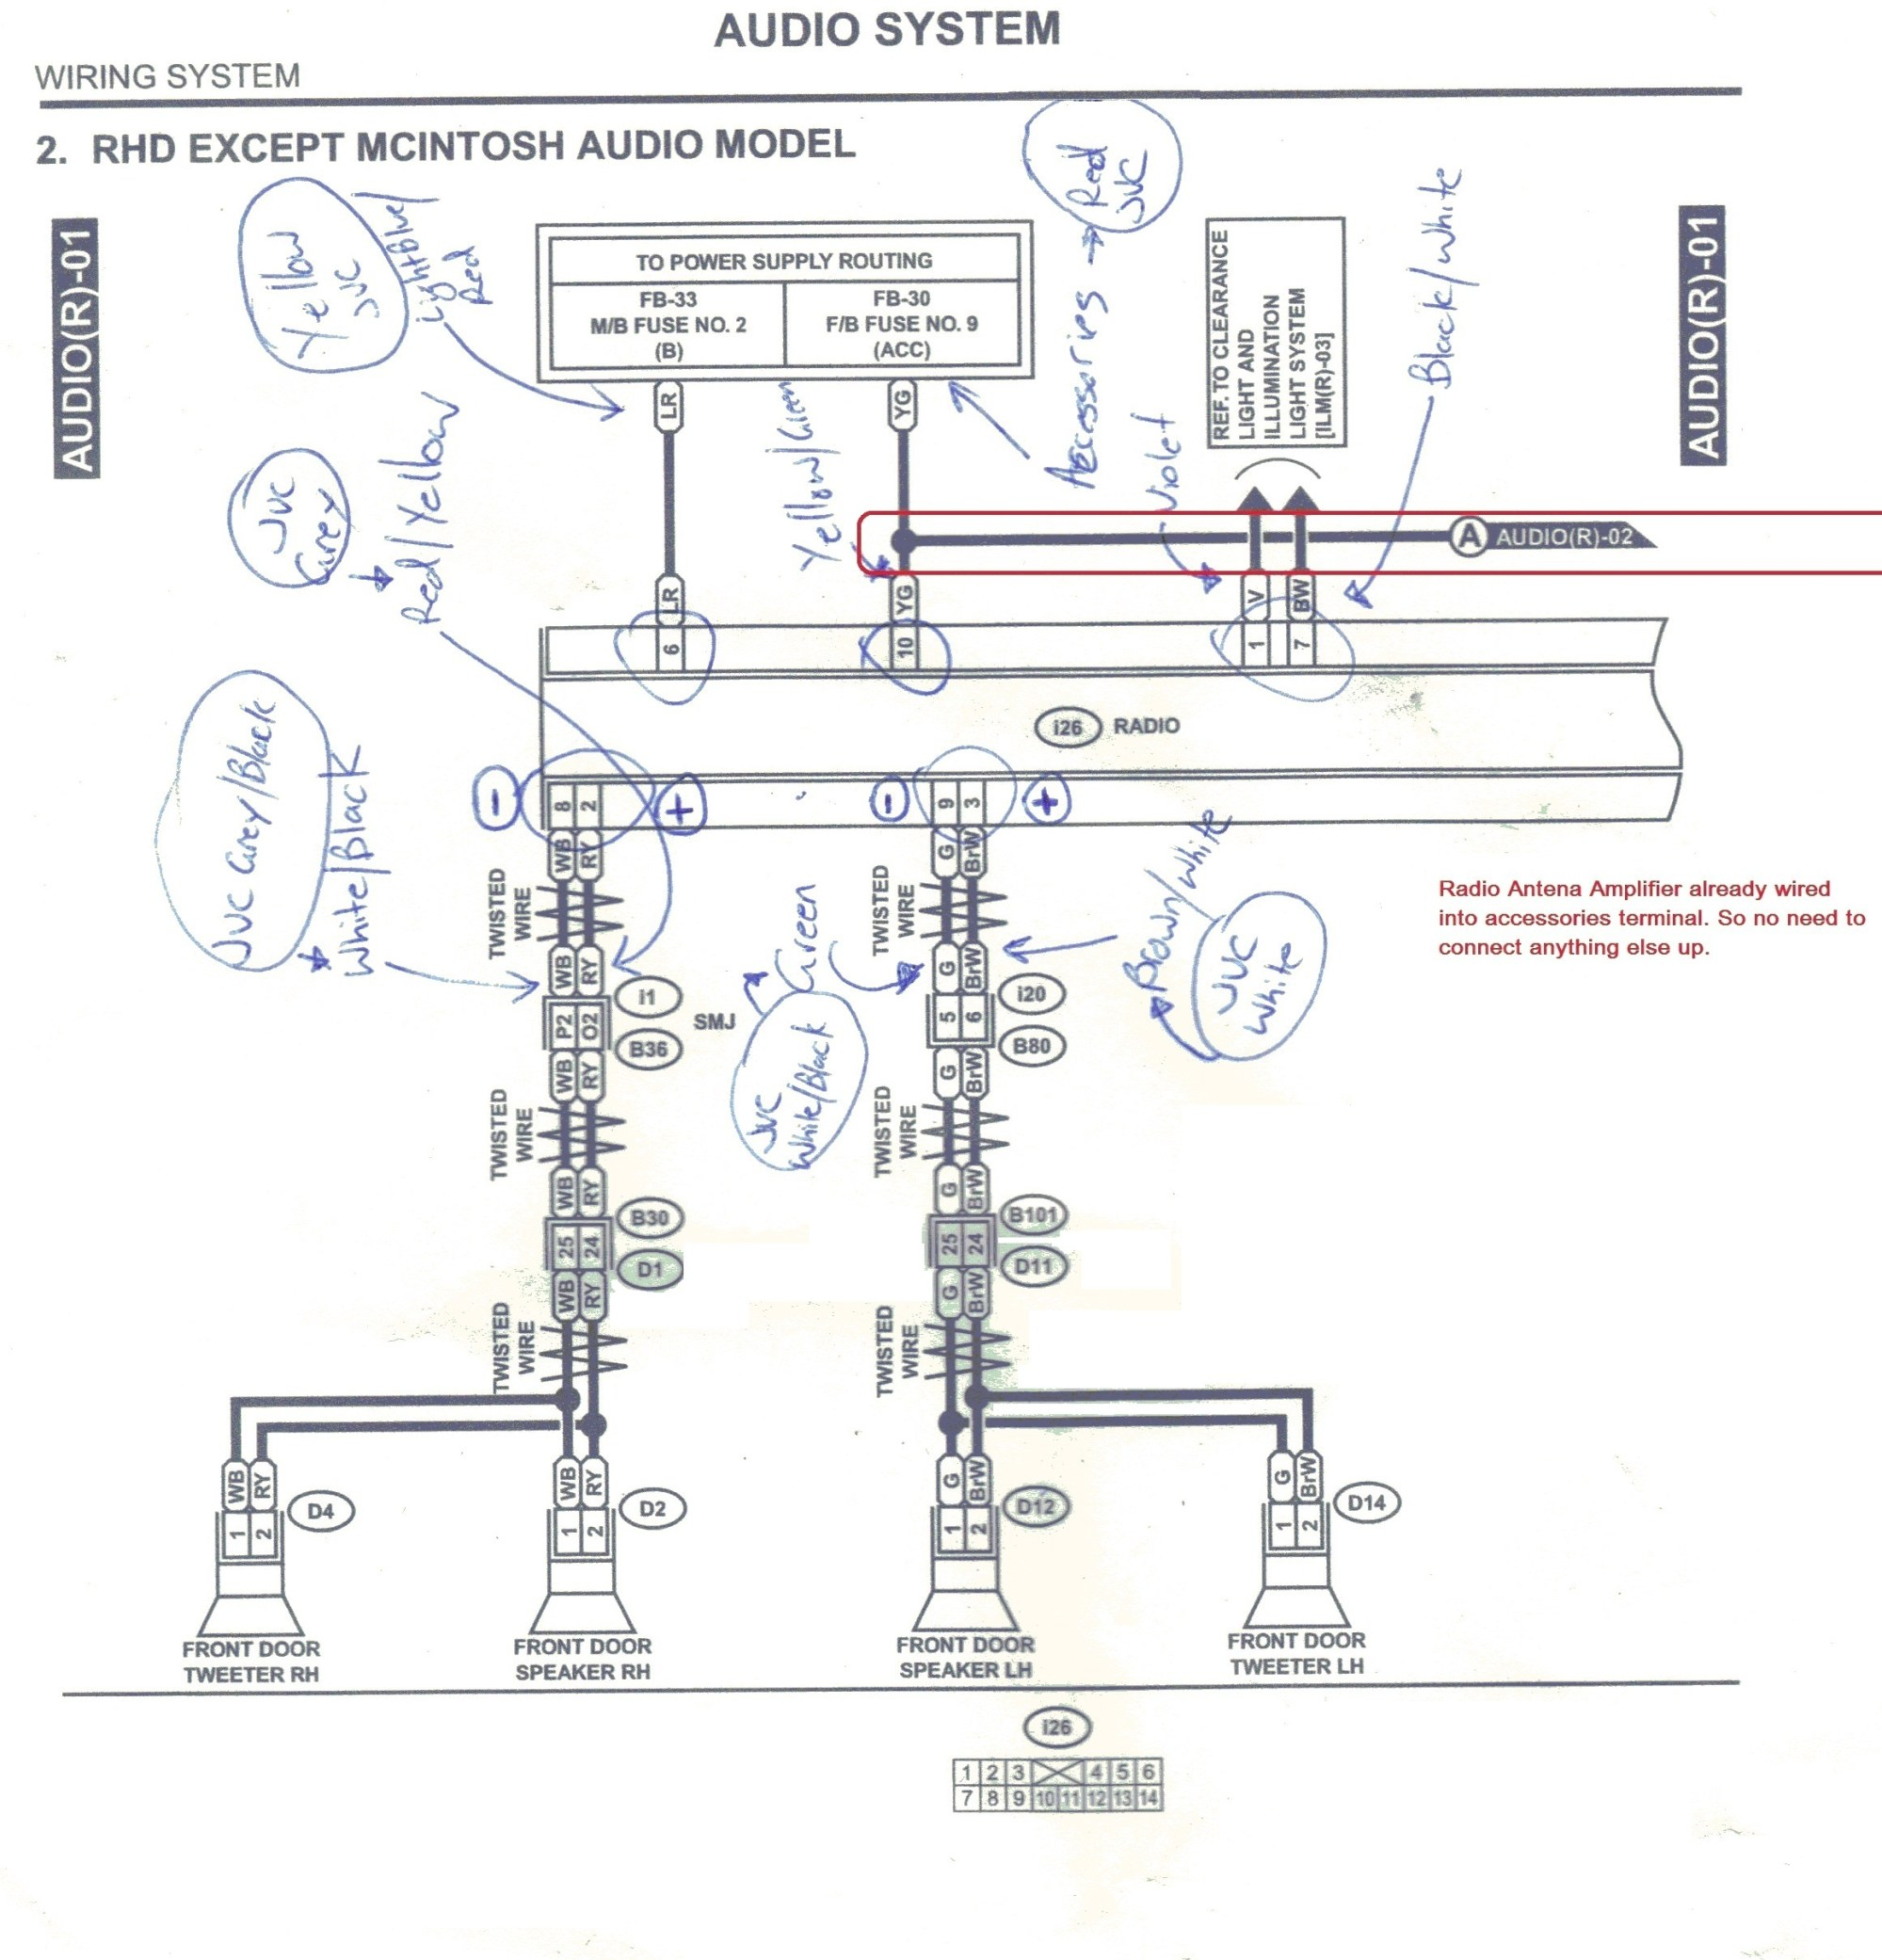 hight resolution of diagram likewise 2010 subaru legacy furthermore subaru wrx sti2004 wrx fuse box diagram wiring library diagram